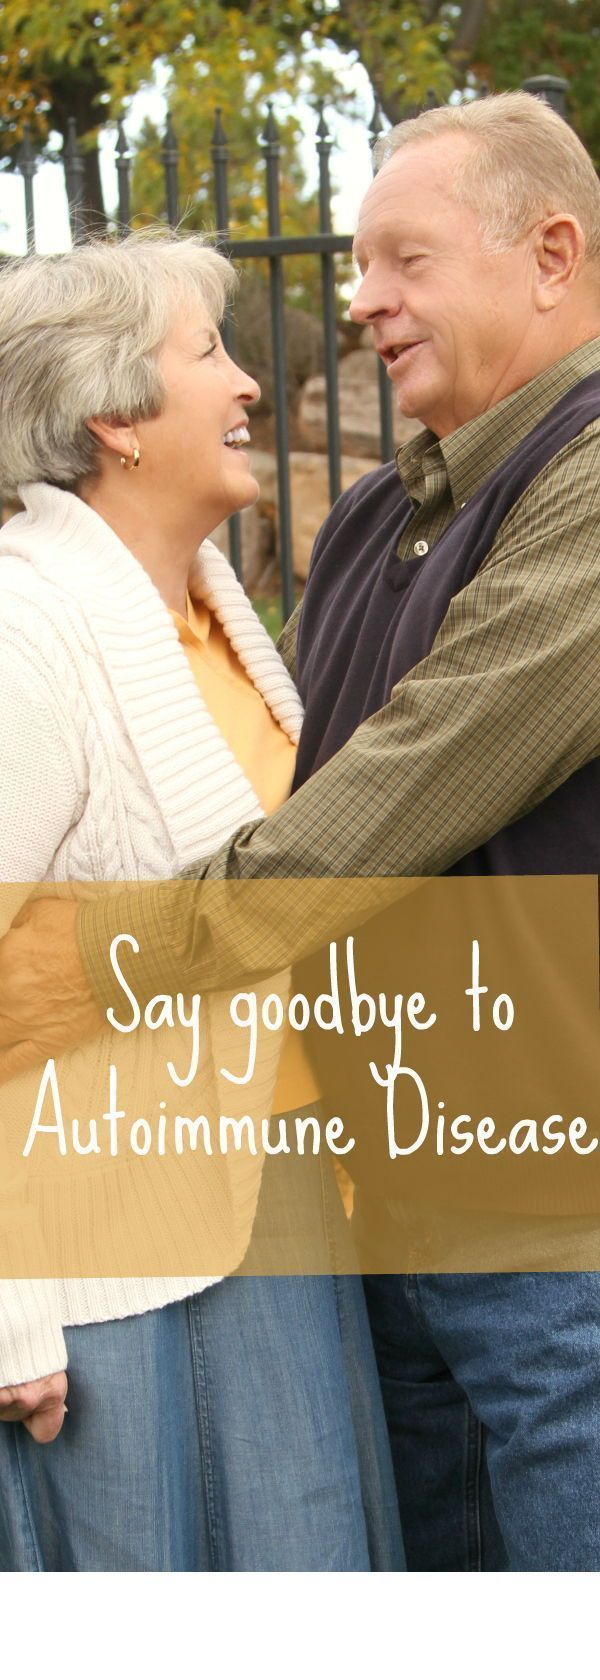 Believe it or not, you CAN take the steps to eliminate or improve your autoimmune disease! I did it and have been symptom-free after 18 months of misery! Symptoms, Diet, Types, Remedies, awareness, diagnosis Rheumatoid Arthritis, Pain, Disorders, support, flare, fatigue, swollen fingers, signs, causes, healing, diet, cure, fasting, low carb, keto, invisible illness, reverse, inspiration, Enbrel, Methotrexate, unbalanced, marathon, unhealthy, triathlon, stress, doctor, thryroid medication…